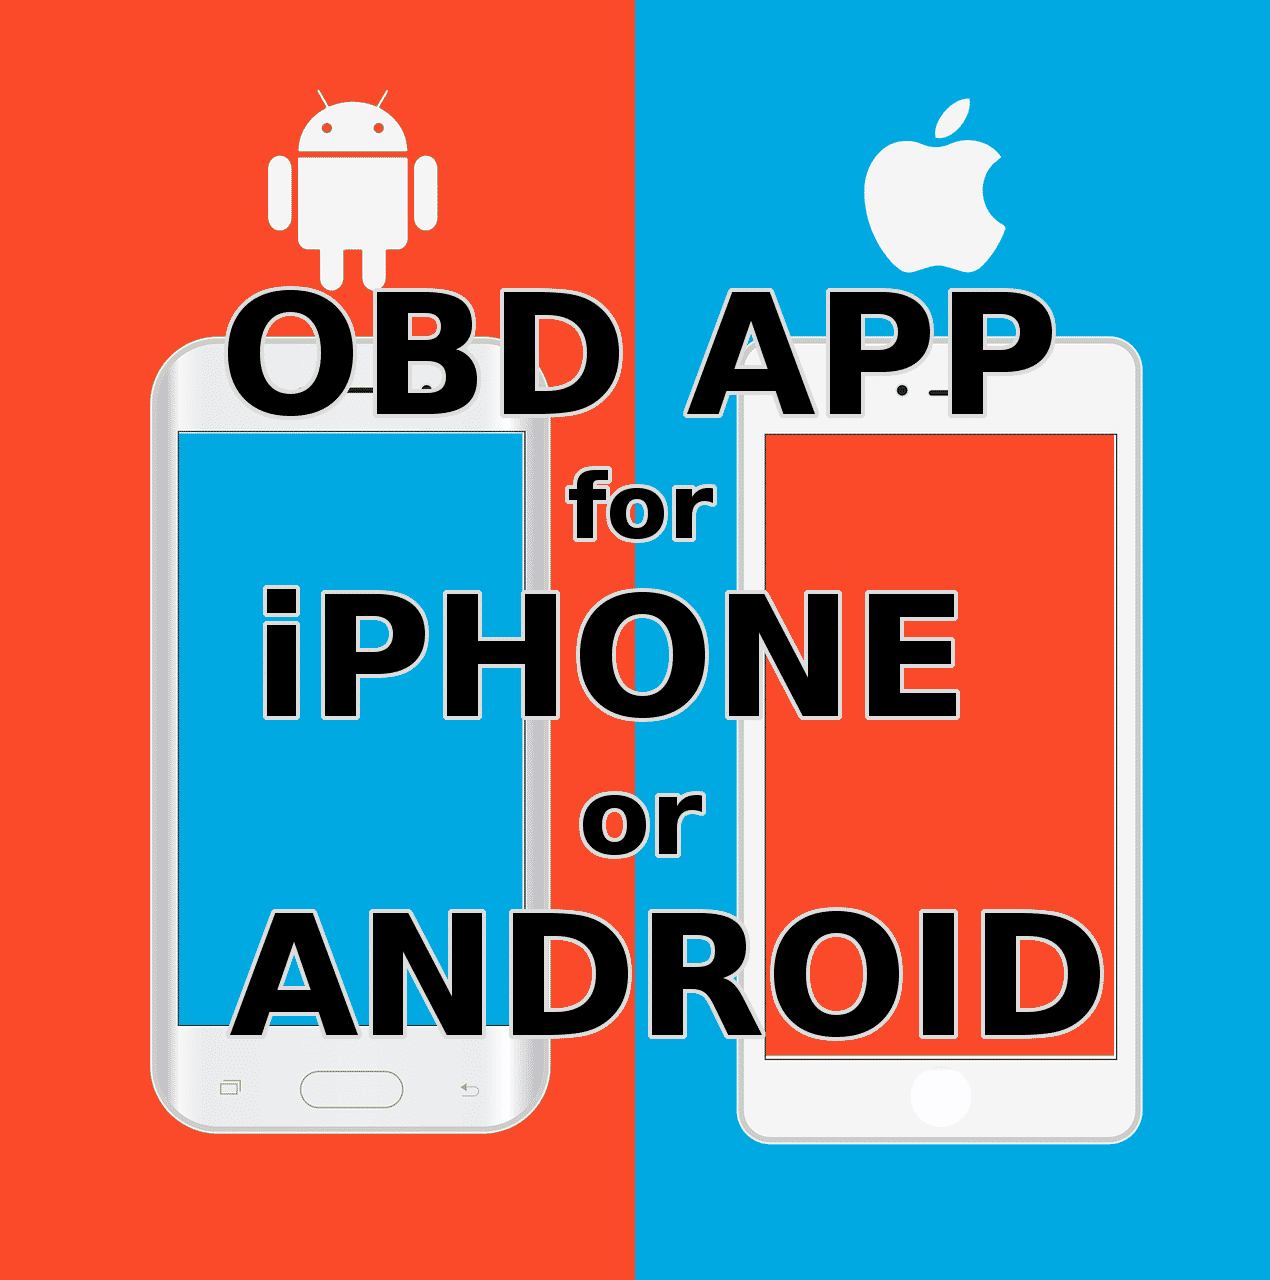 OBD2 App Android iPhone